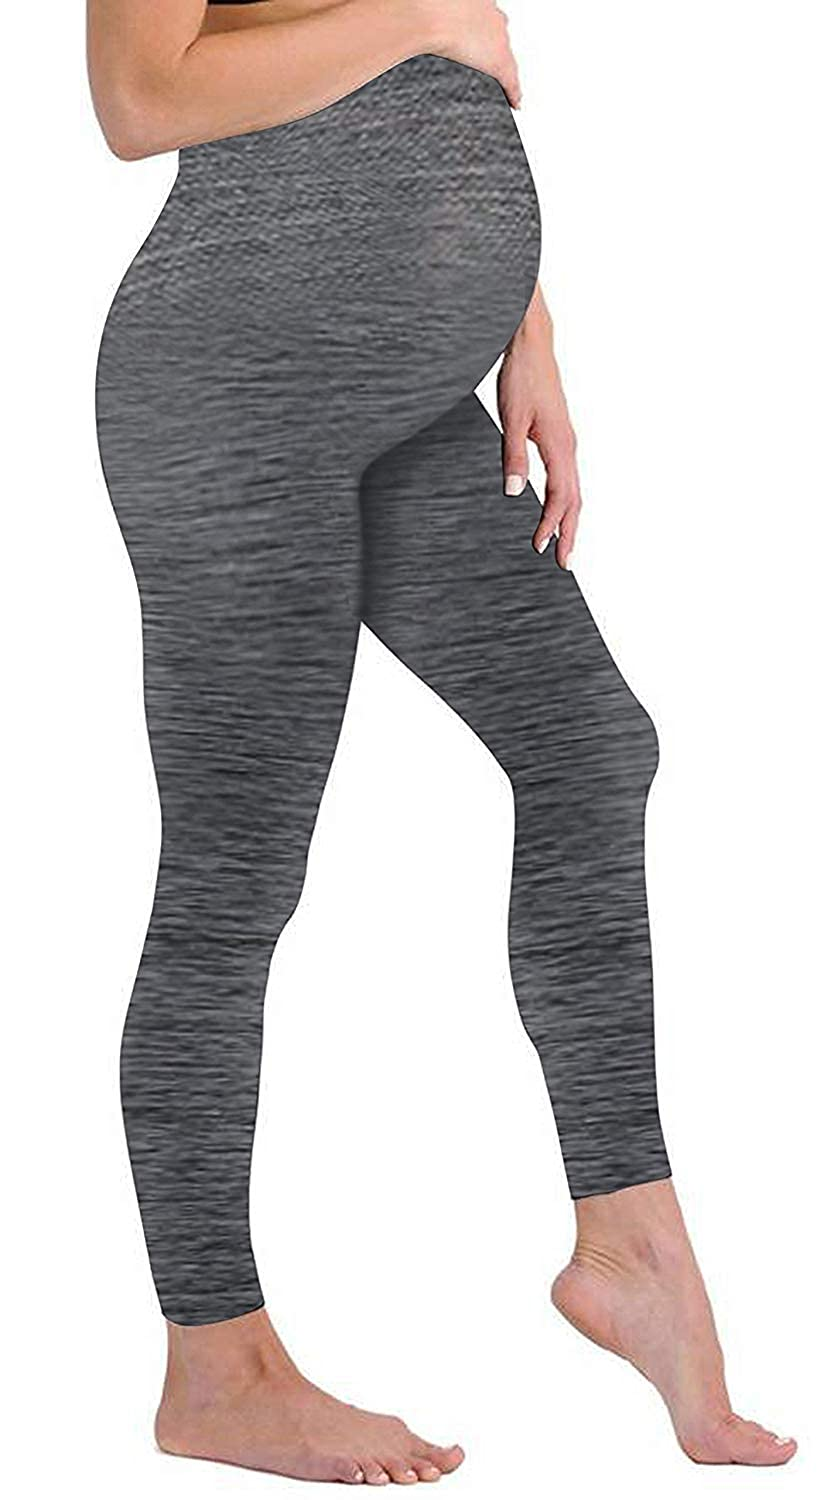 5bbc366ac5dc0 Touch Me Maternity Leggings Black Navy Grey Soft Solid Stretch Seamless Tights  One Size Fits All Active Wear Yoga Gym Clothes (Maternity - One Size Fits  All ...